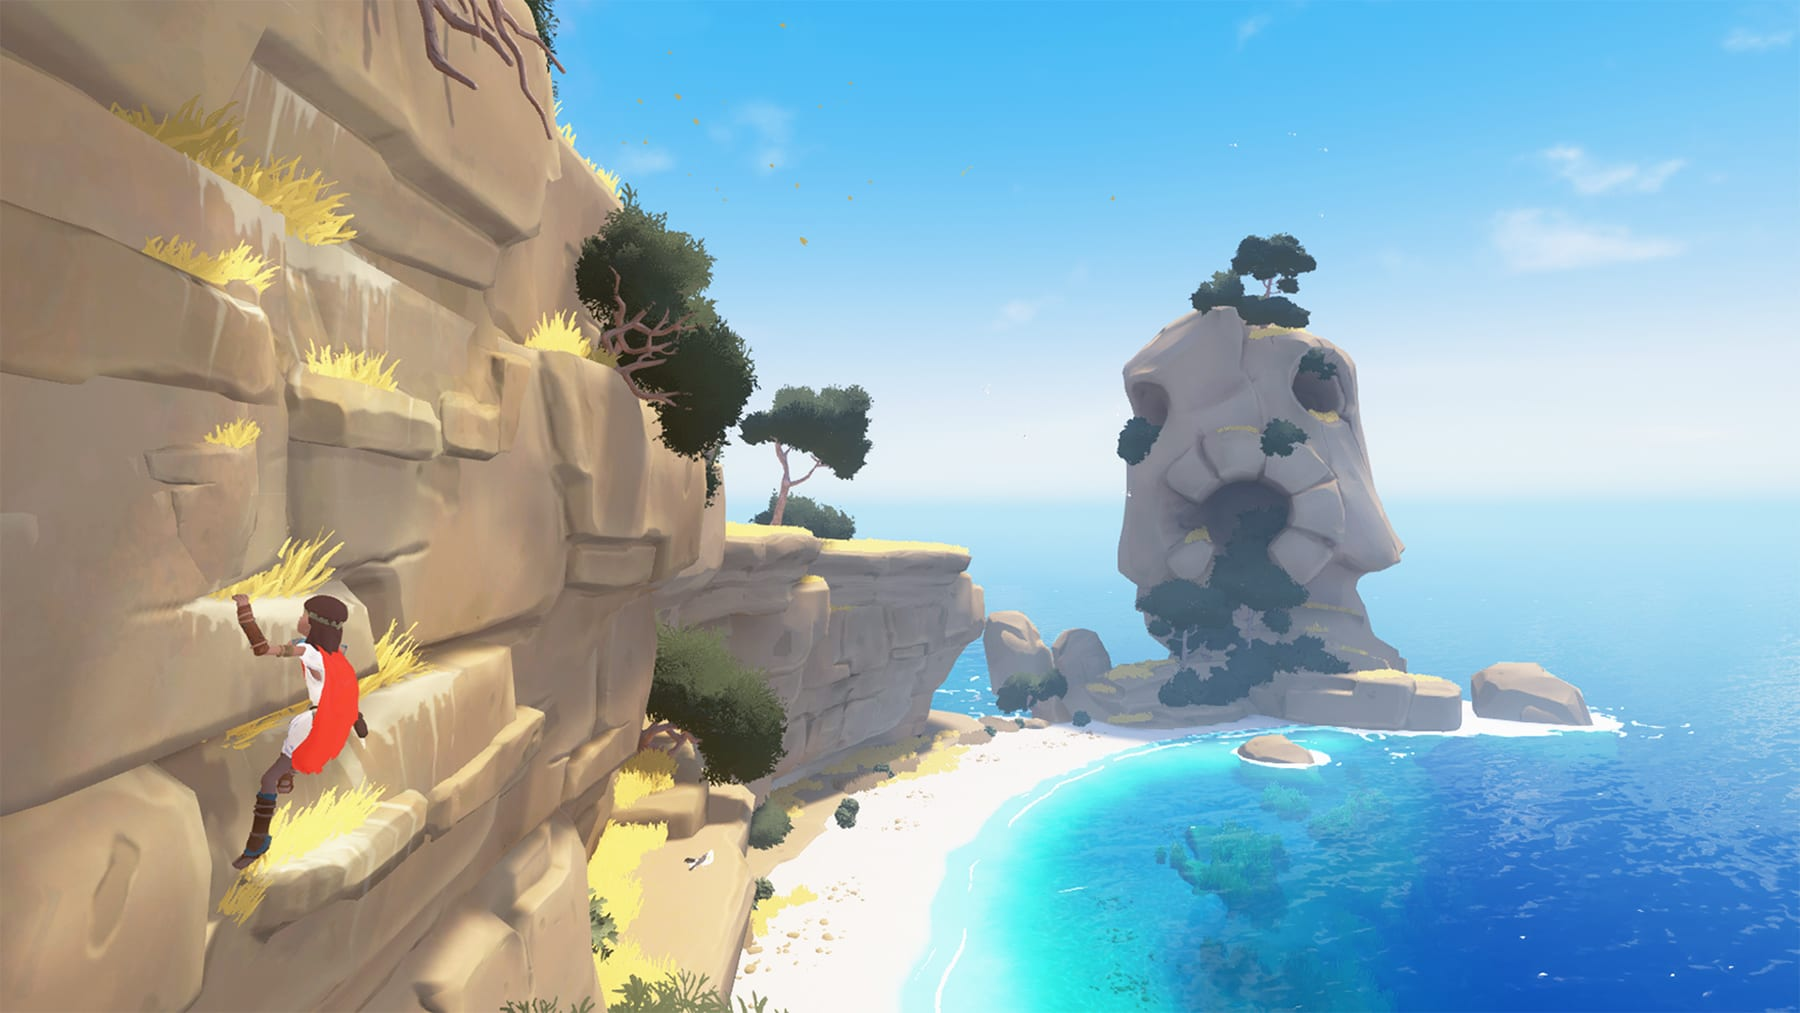 Rime Goes Drm Free After Hackers Crack The Game In Days